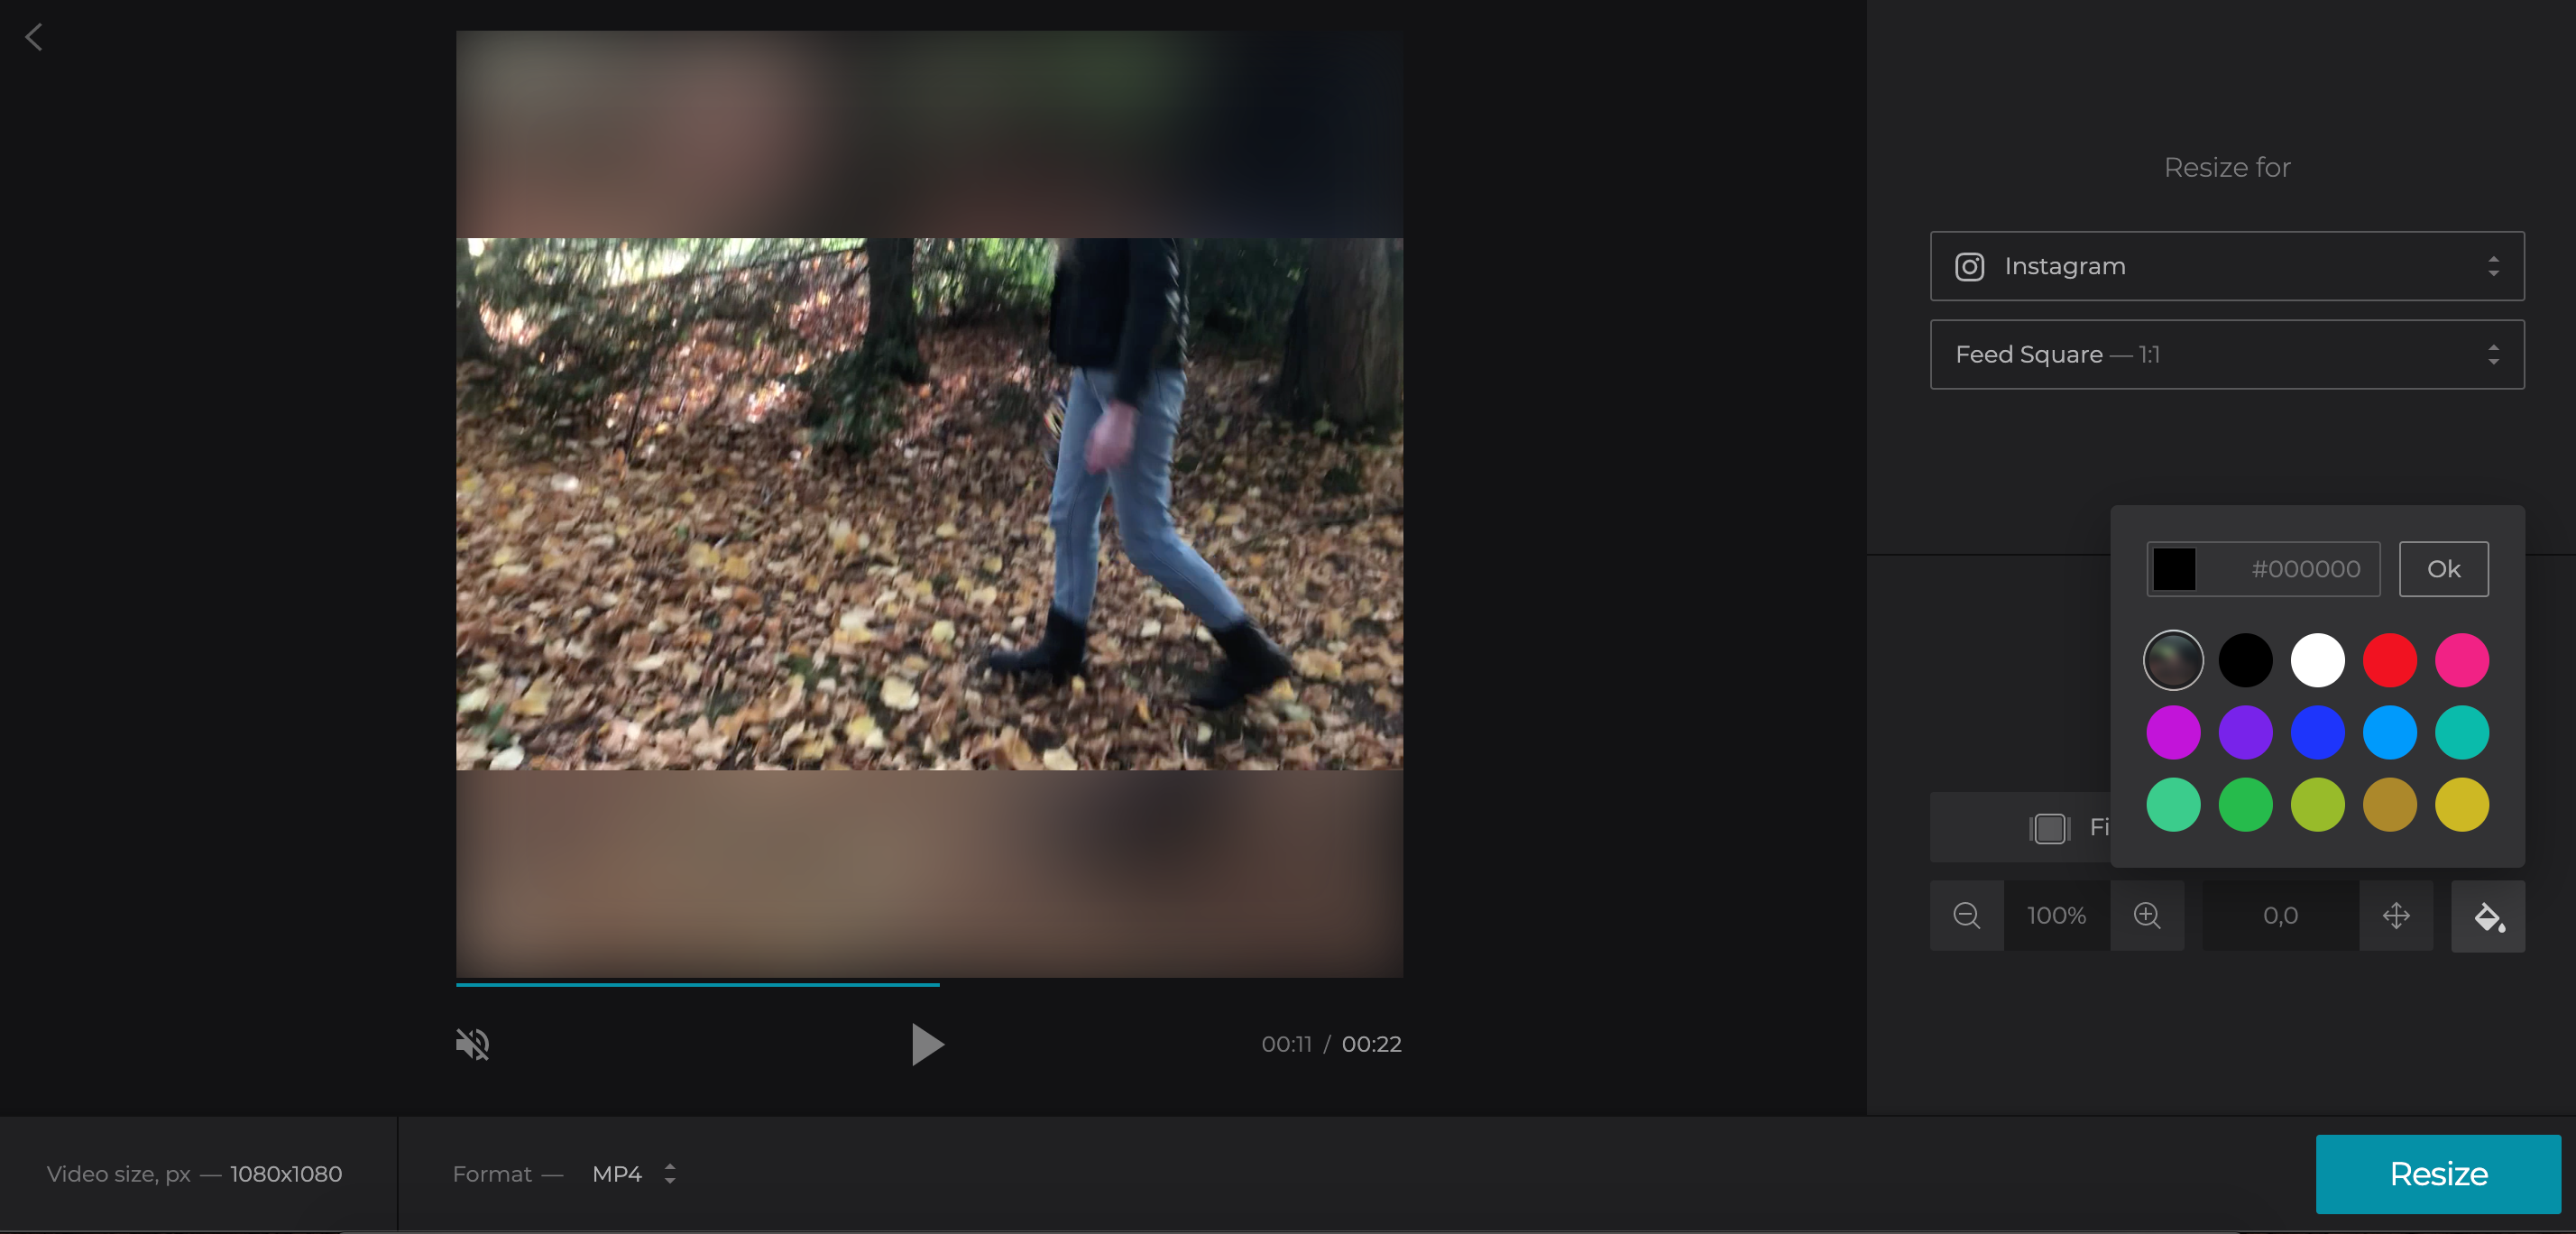 Add background for Vimeo video for Instagram